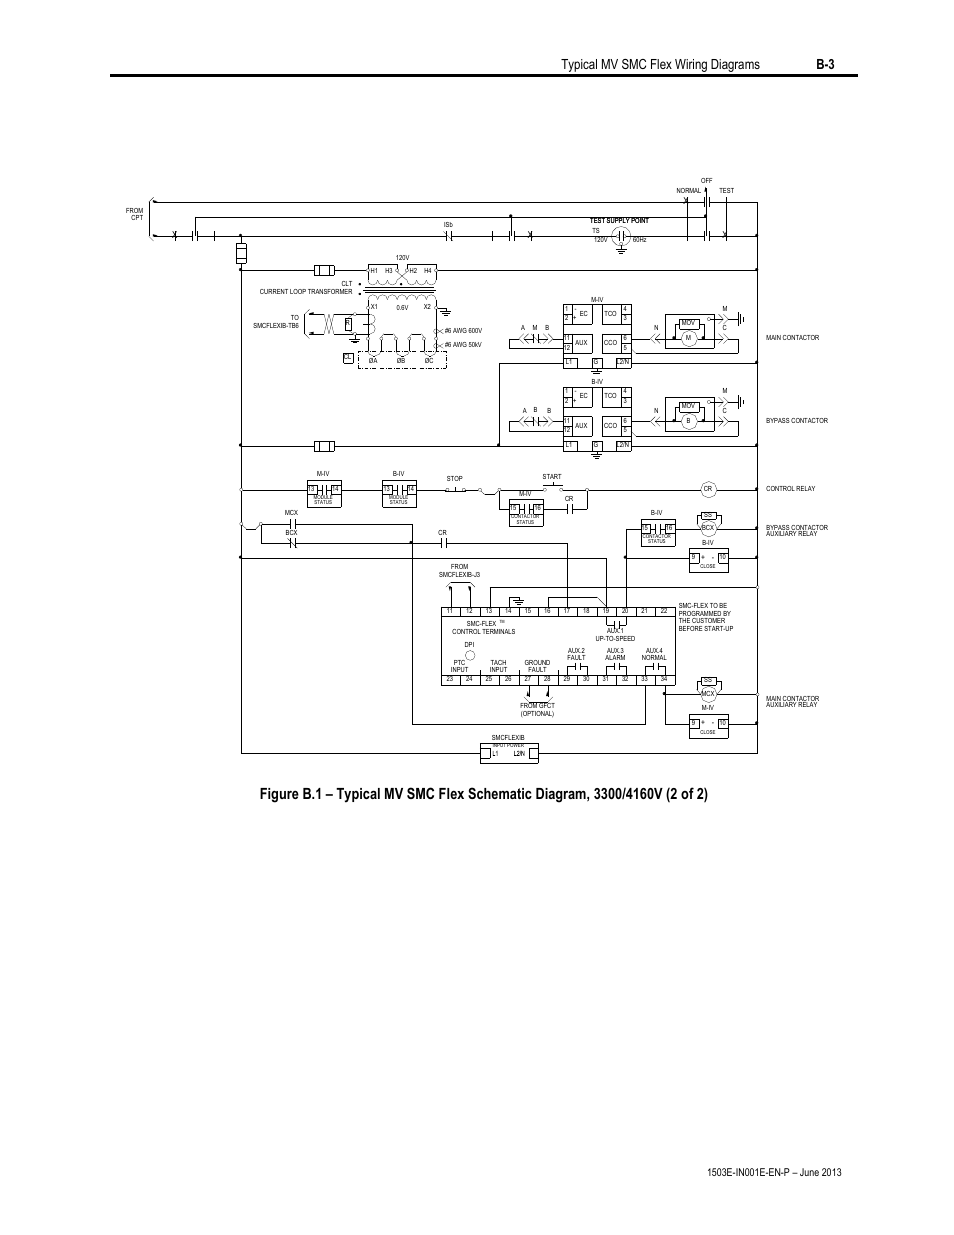 rockwell automation mv smc flex oem components page57?resize\\\\\=665%2C861 e38 wiring diagram a20 wiring diagram, z8 wiring diagram, c13 cfmoto z8 wiring diagram at virtualis.co